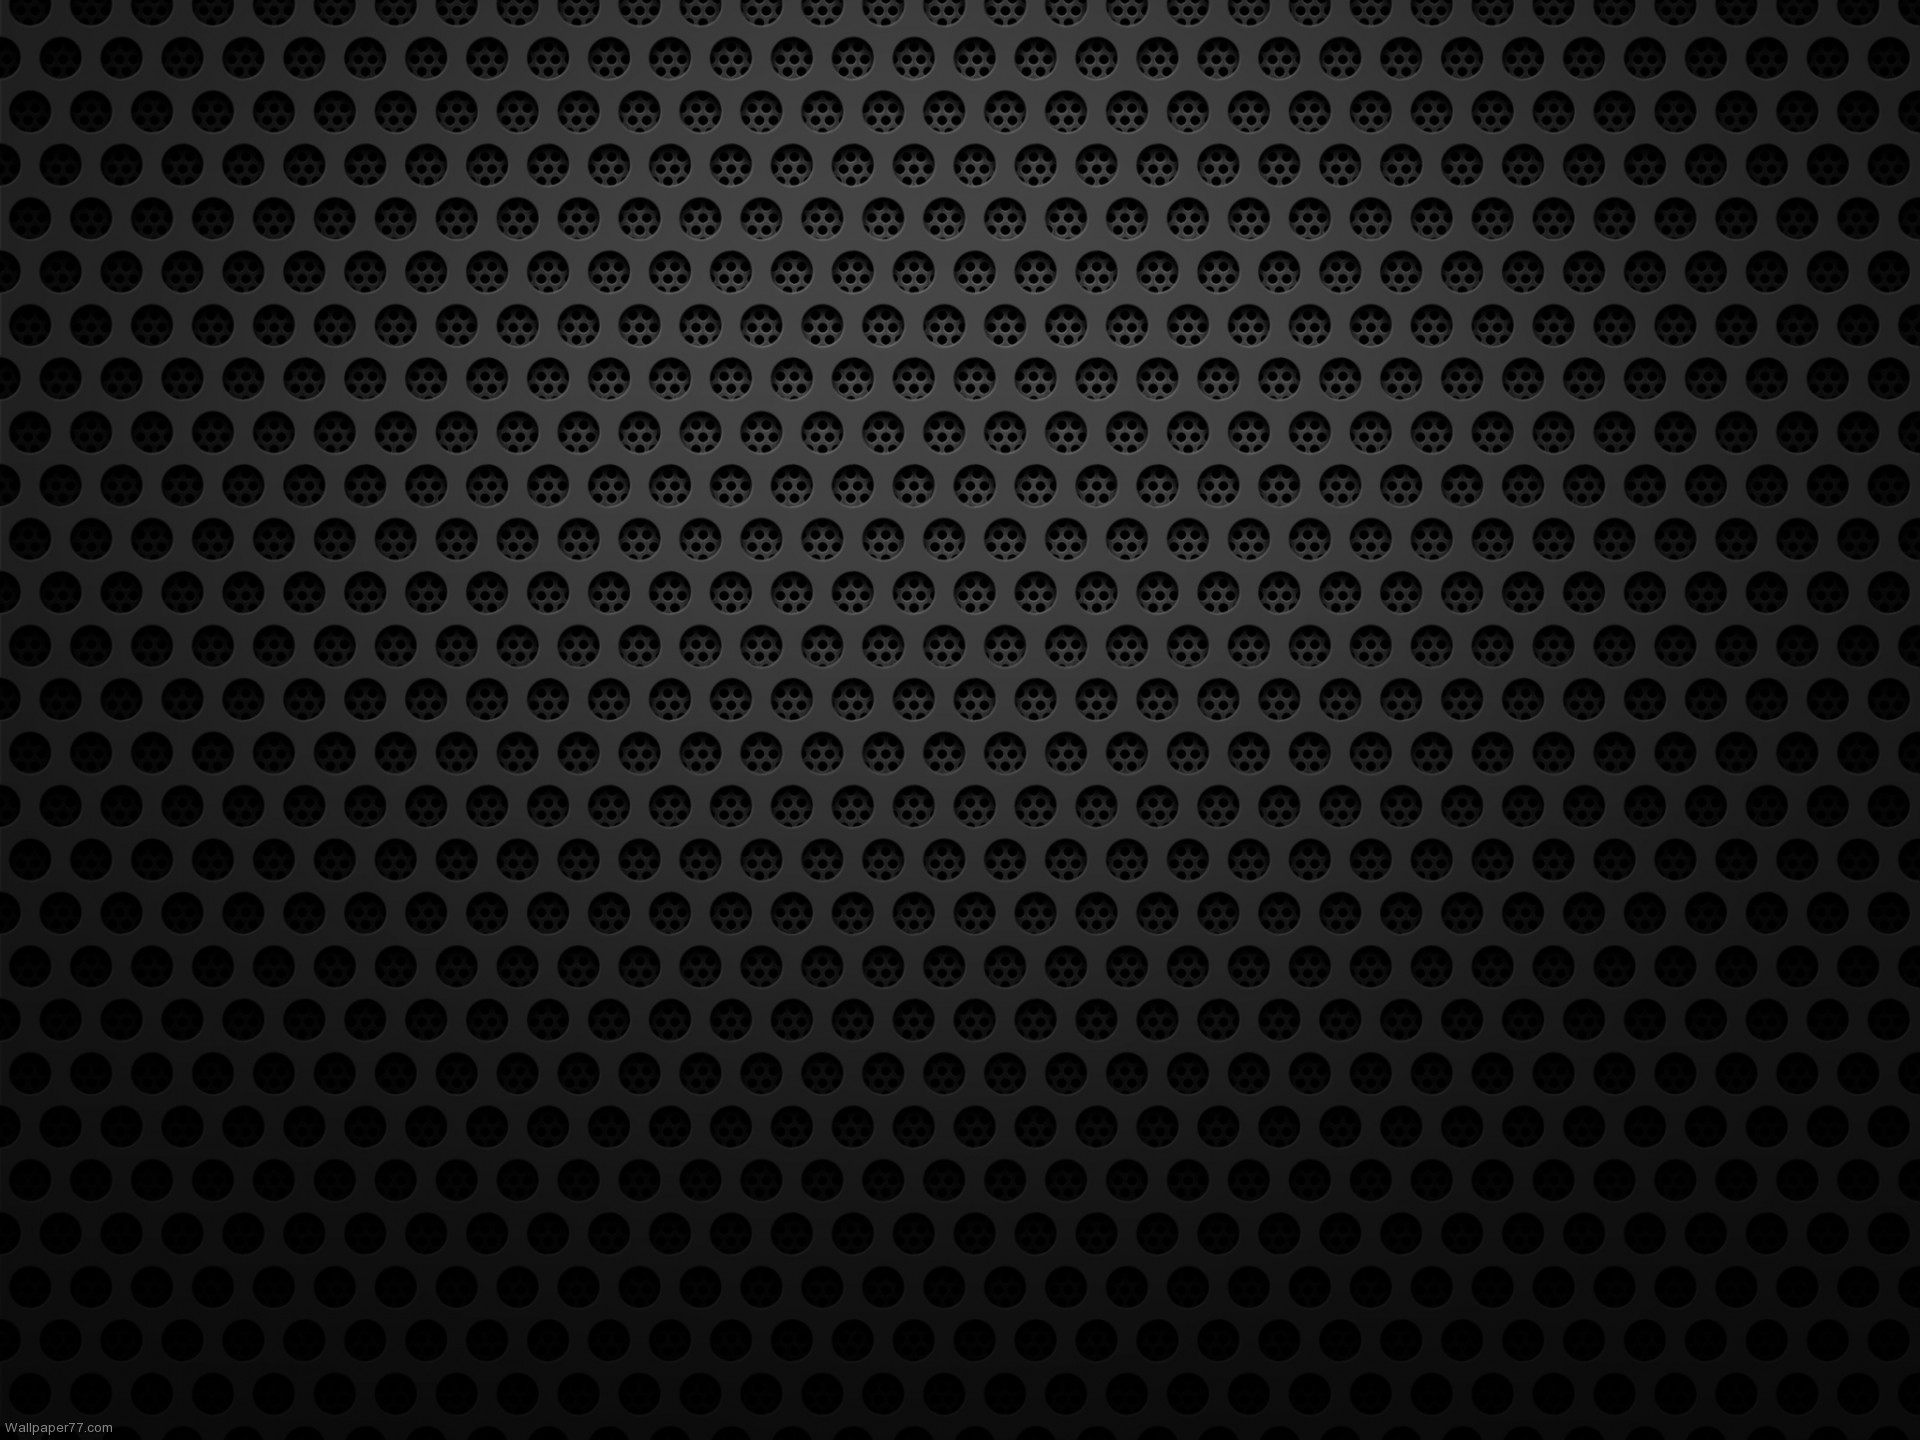 ipad 3 wallpaper ipad wallpaper retina display wallpaper the new ipad 1920x1440